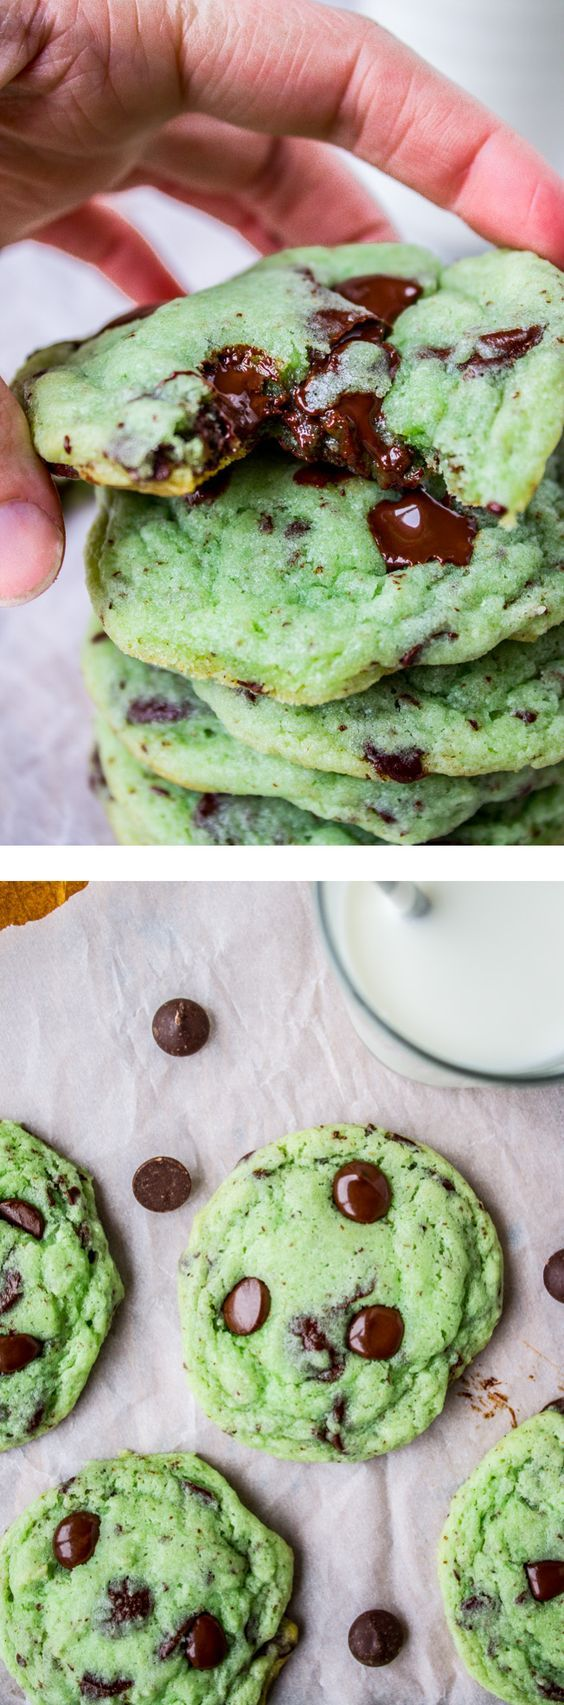 Mint Chocolate Chip Cookies // The Food Charlatan. Mint + dark chocolate = heaven. Perfectly green for St. Patrick's Day!